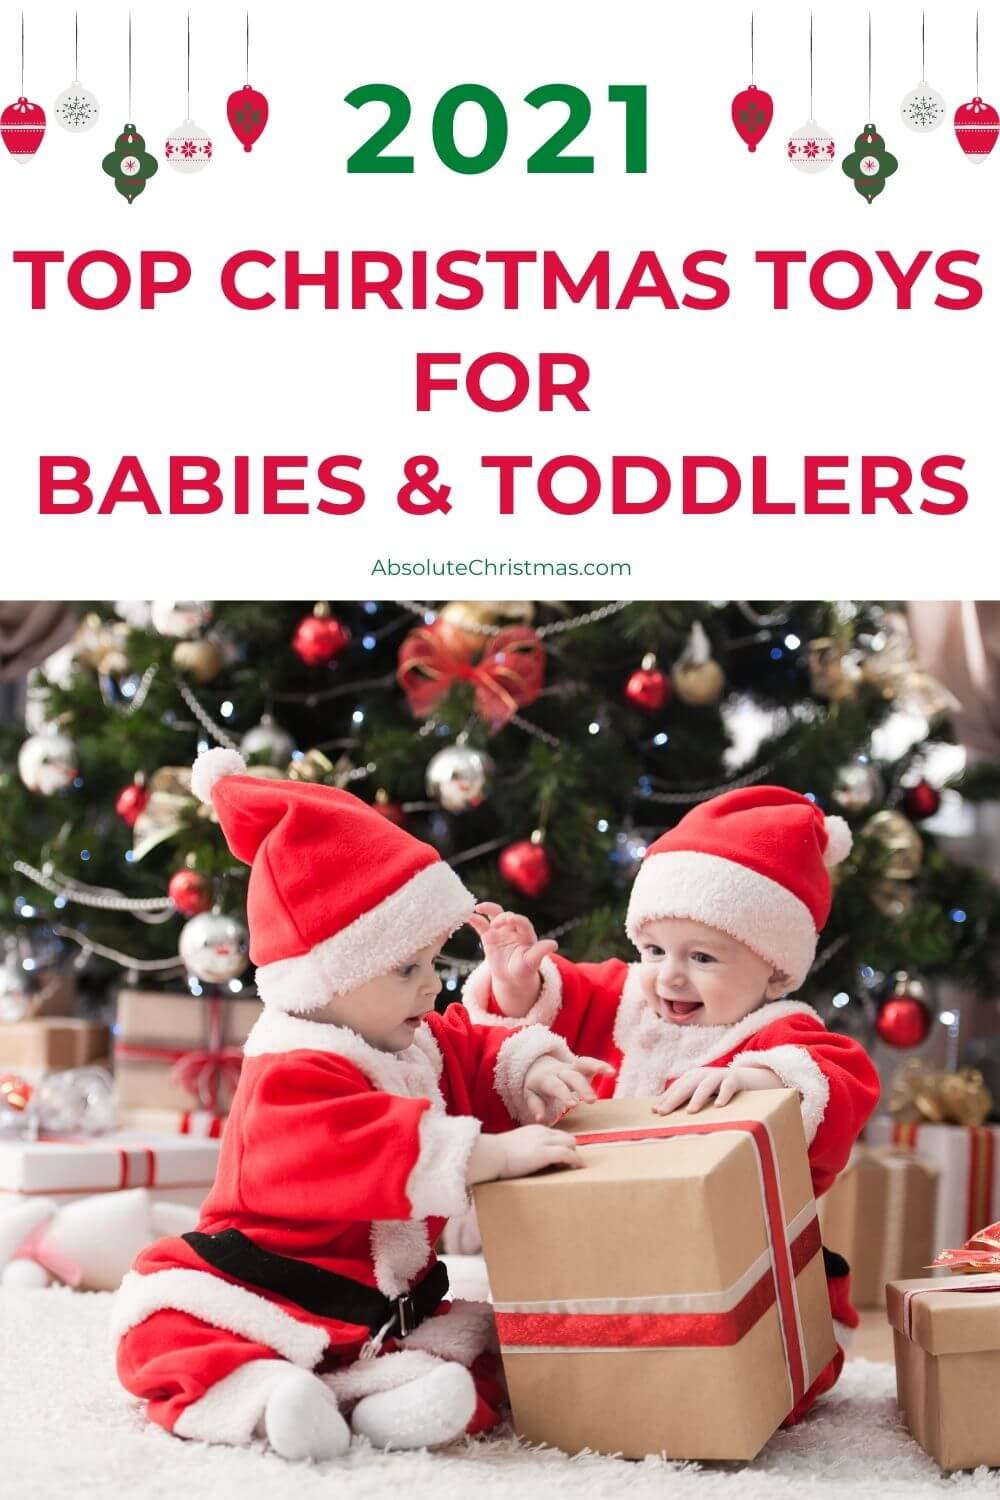 Top Christmas Toys for Babies and Toddlers - 2021 Holiday Toy Guide